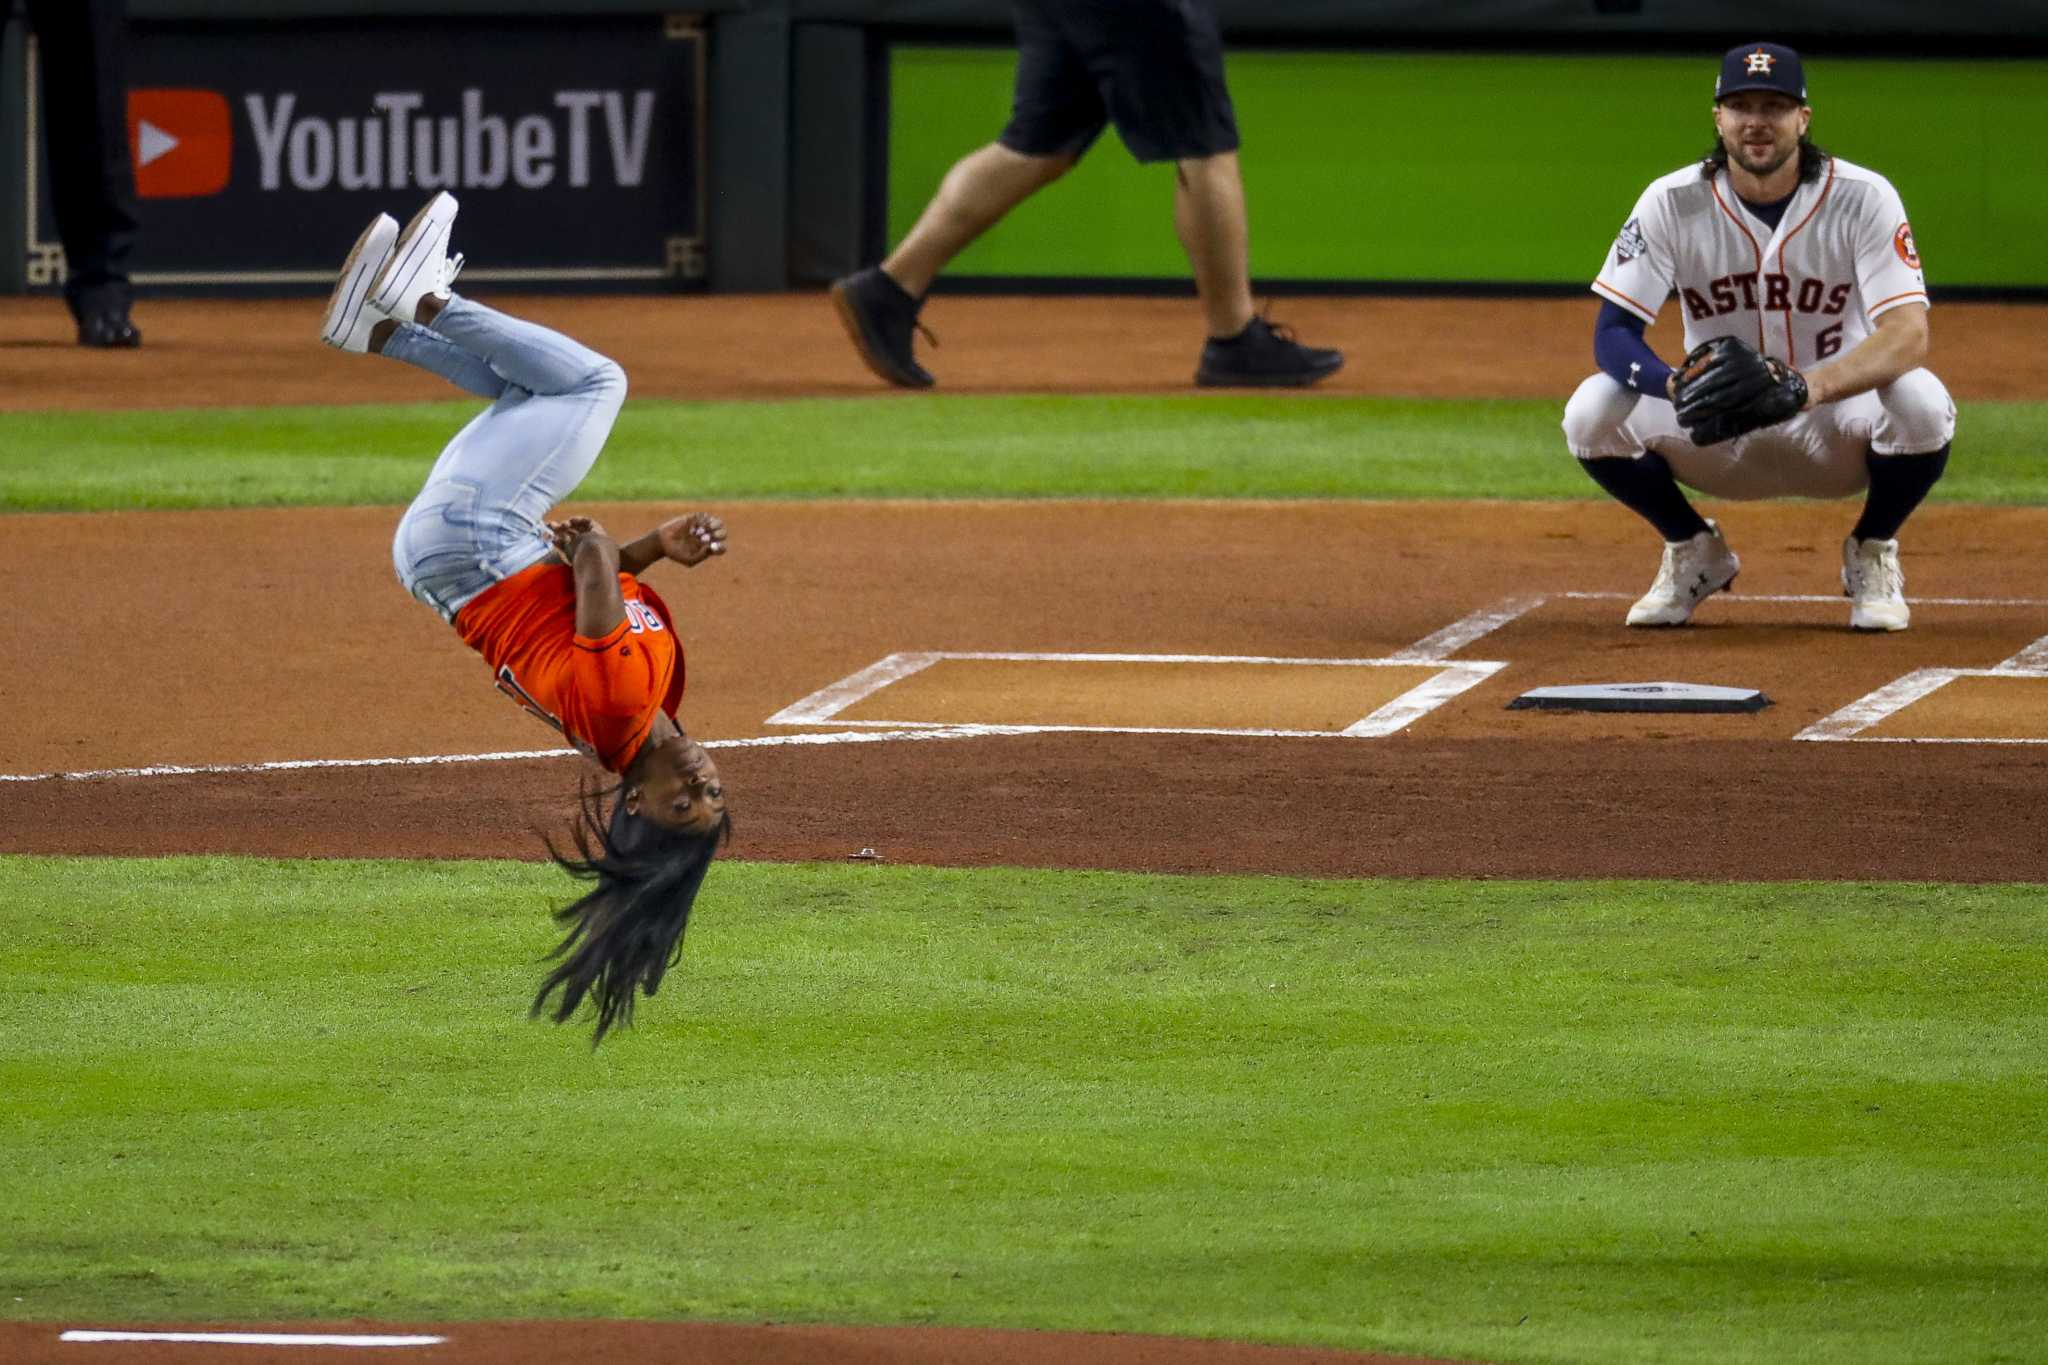 Simone Biles pulls off standing back flip with twist before World Series first pitch